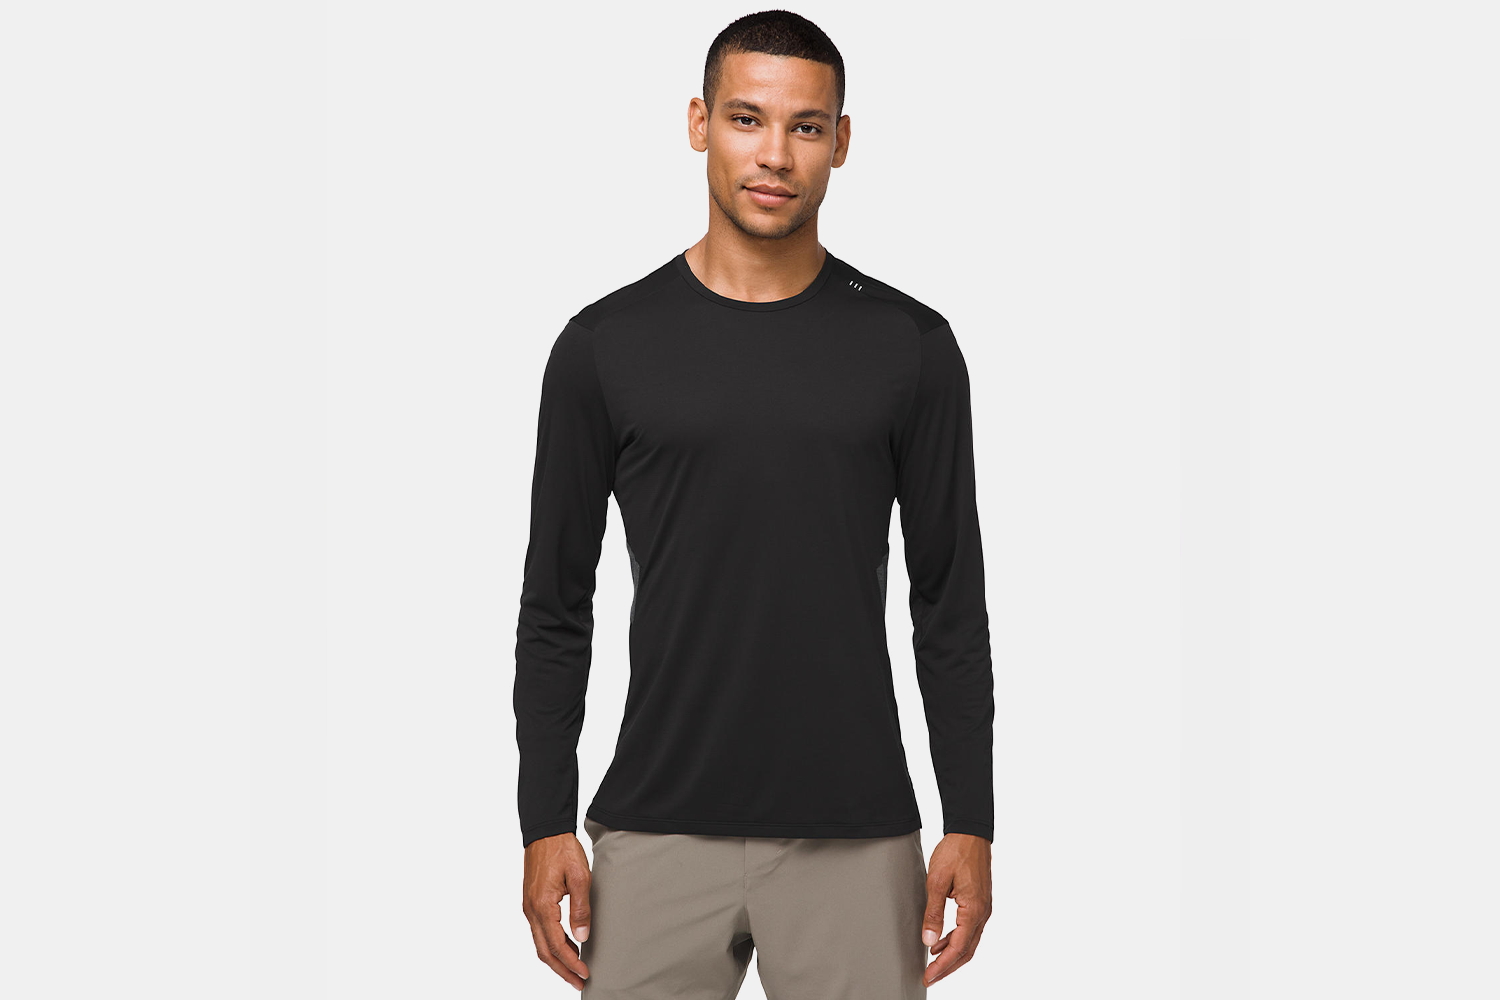 The Best Long-Sleeve Running Shirt I Own (Plus 5 Others) - InsideHook